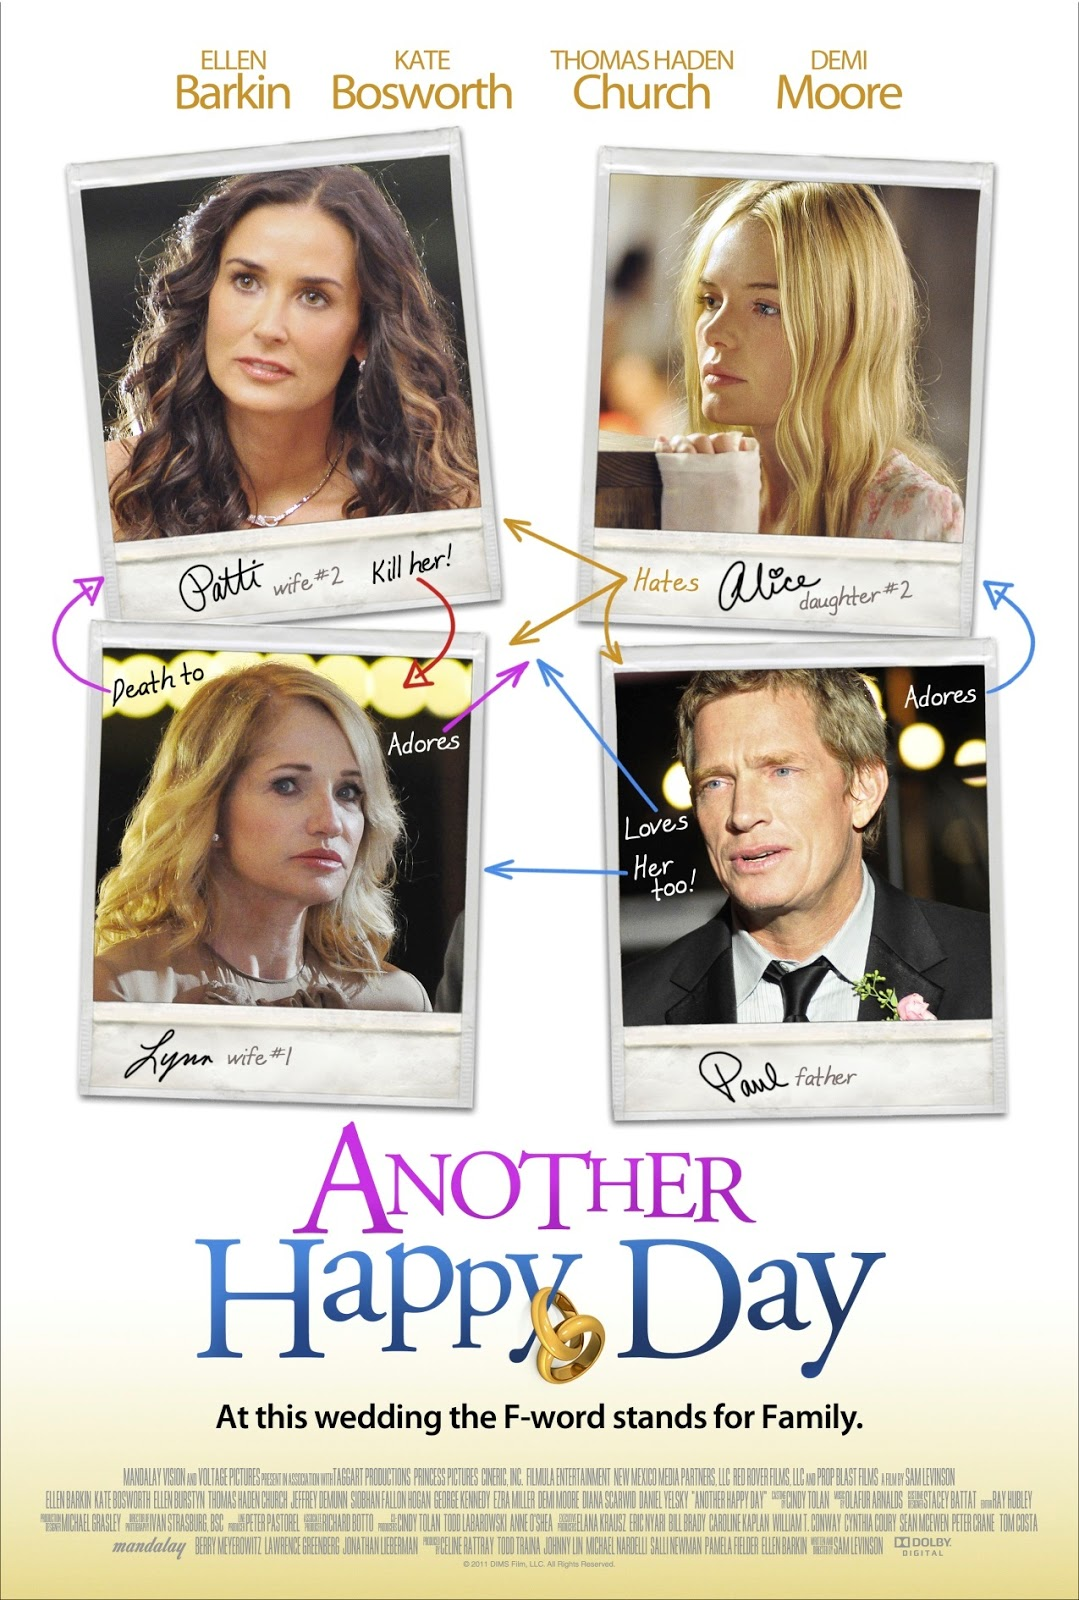 http://1.bp.blogspot.com/-DU0Kl3OmxV0/UQkxUPkYDcI/AAAAAAAAQHU/f0NLCsQsLFw/s1600/Another-Happy-Day-cover-locandina-3.jpg